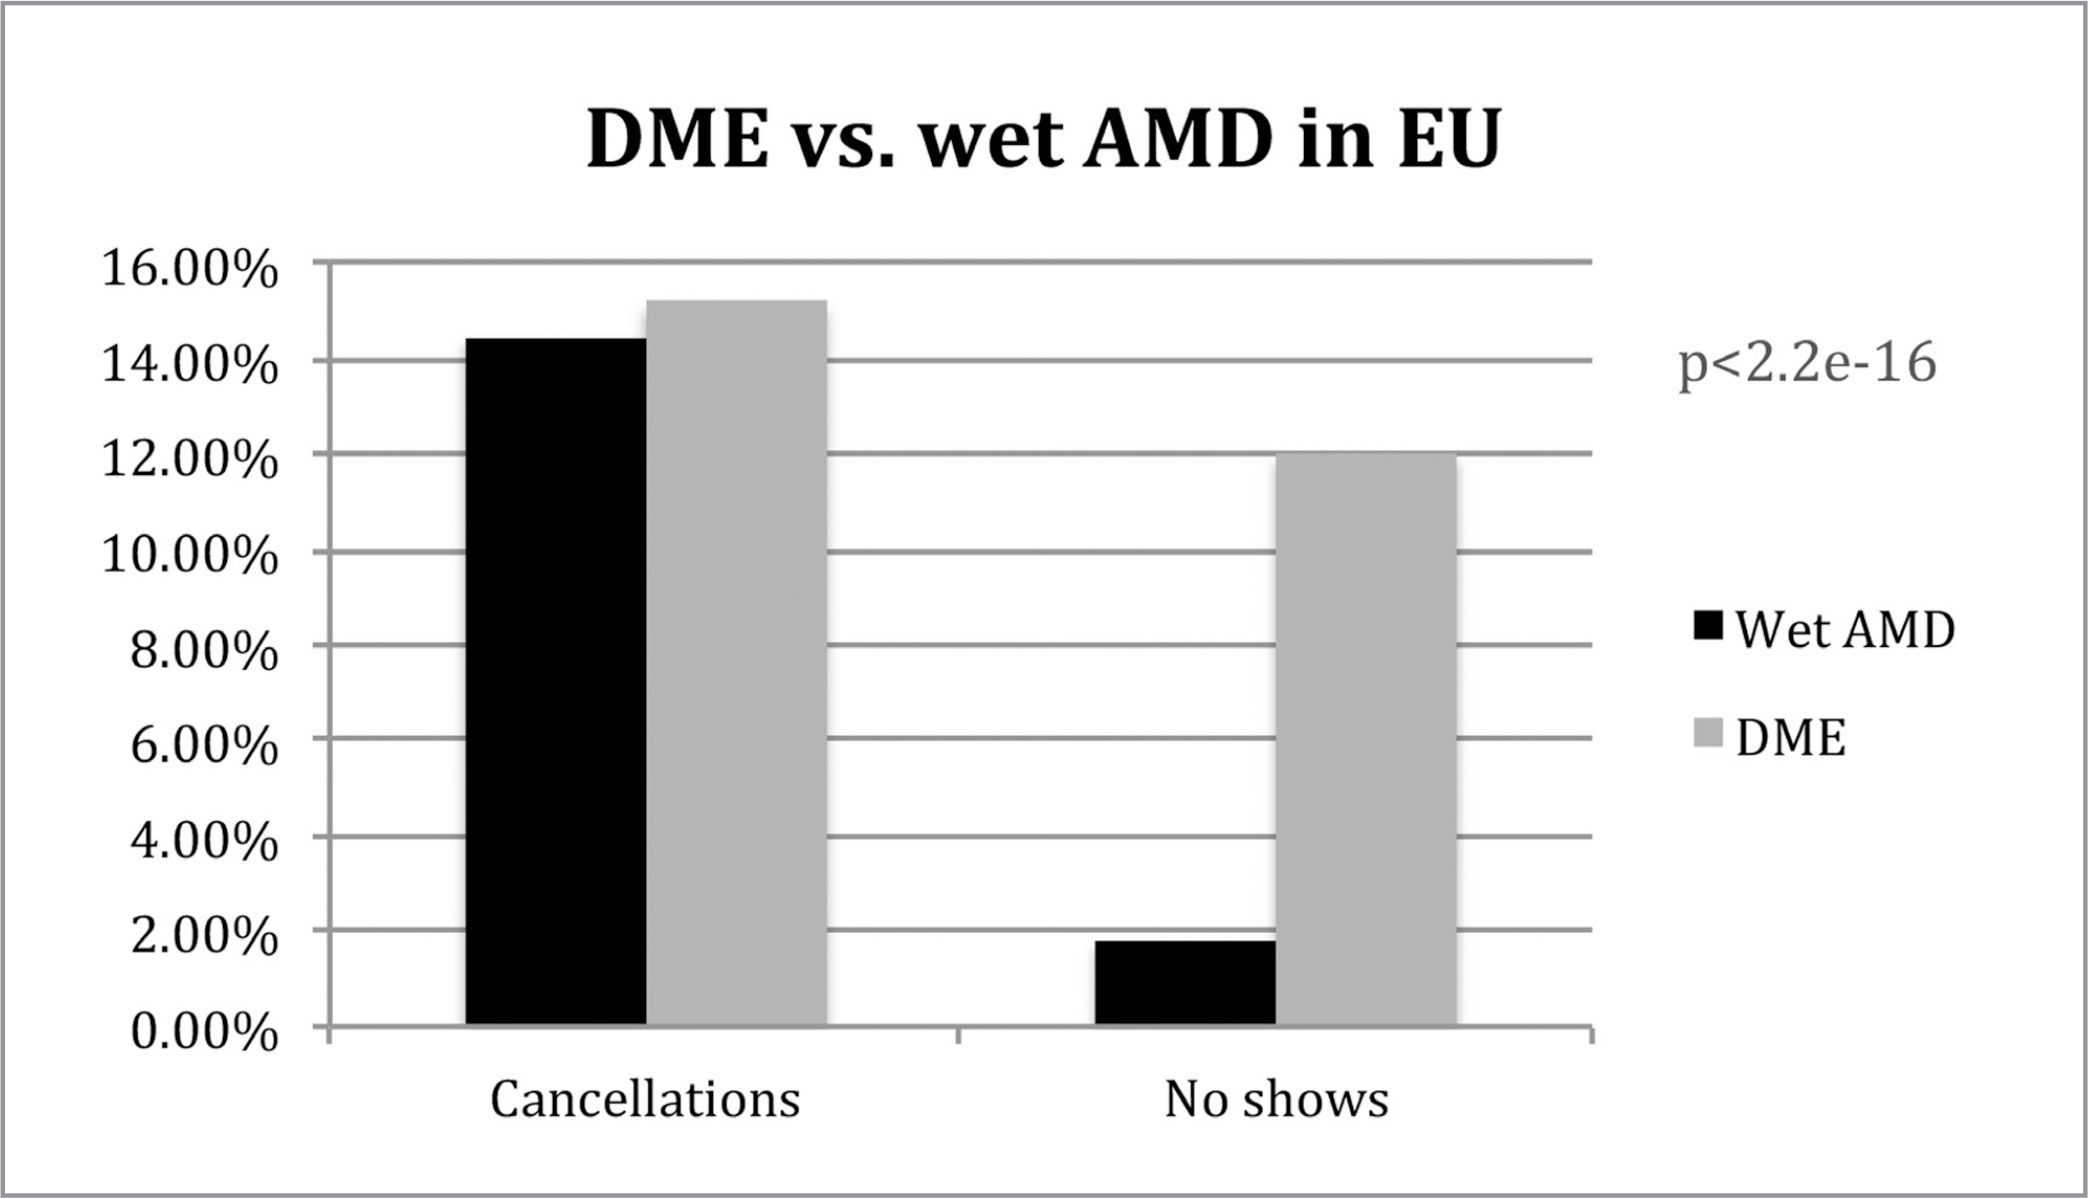 Cancellations and no-shows for patients with wet age-related macular degeneration (AMD) and diabetic macular edema (DME) in Europe (EU).